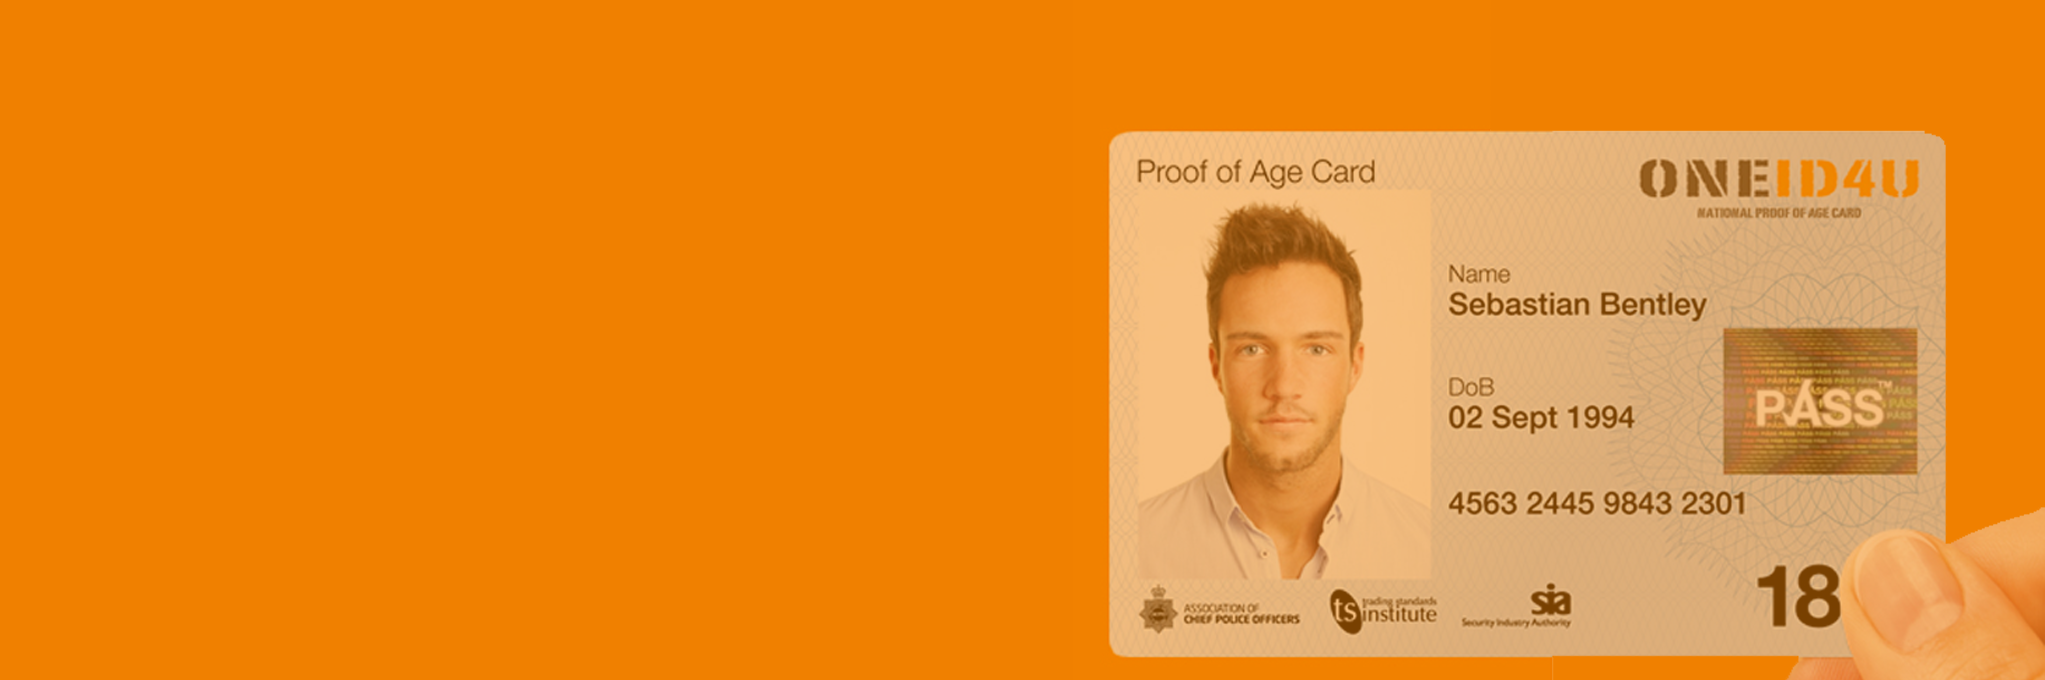 Official UK Proof of Age Card